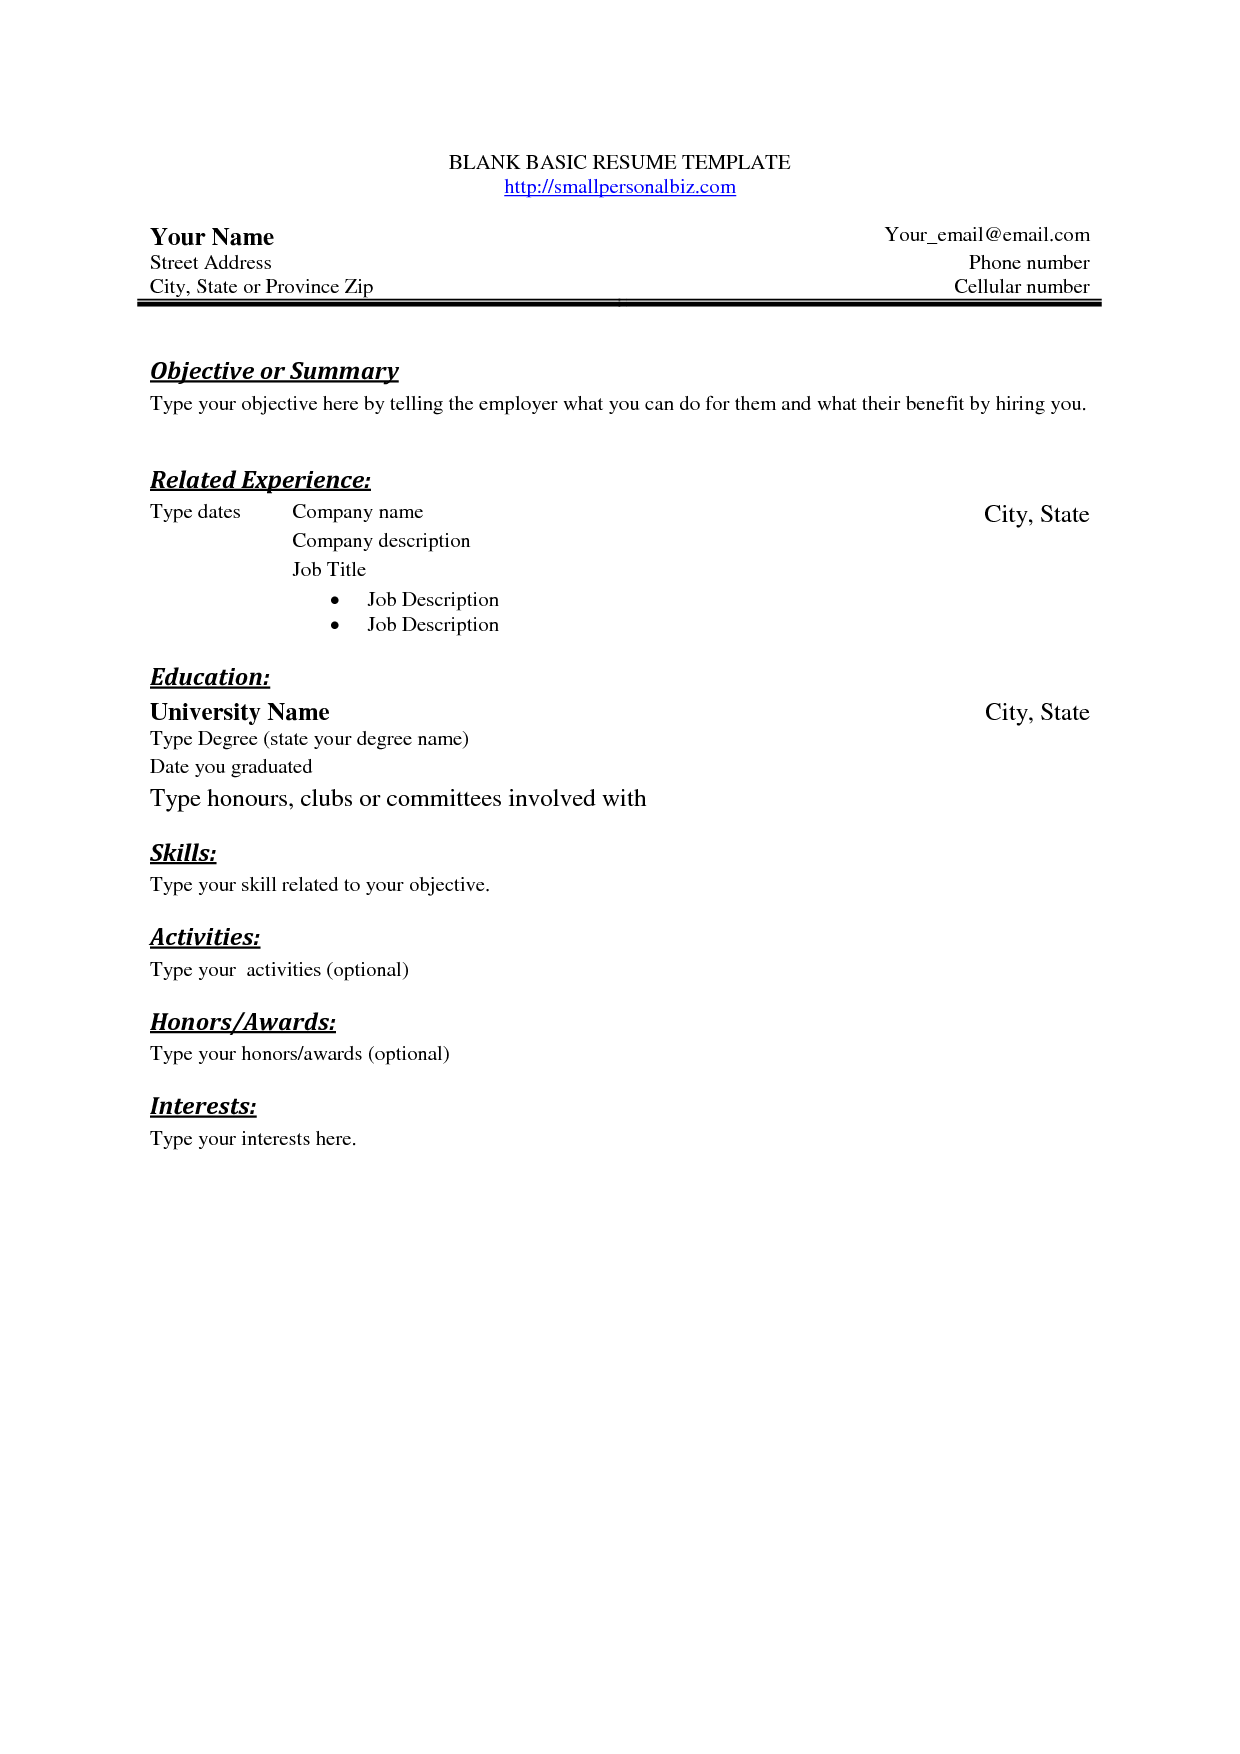 easy sample resume format easy sample resume - Easiest Resume Builder